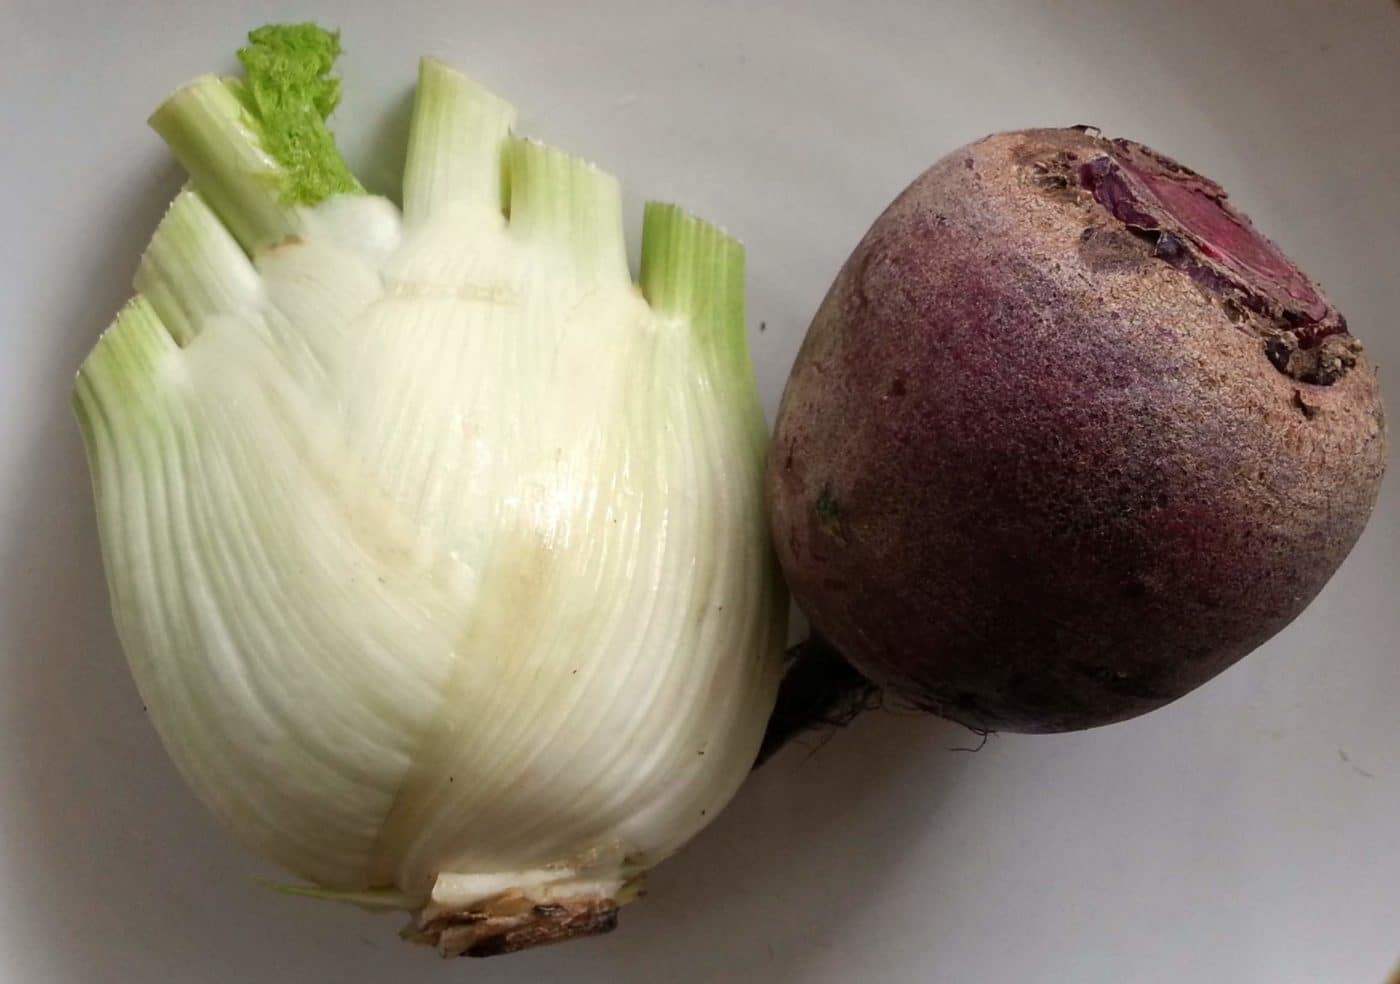 Simple side dish: Sautéed beets with fennel and lemon